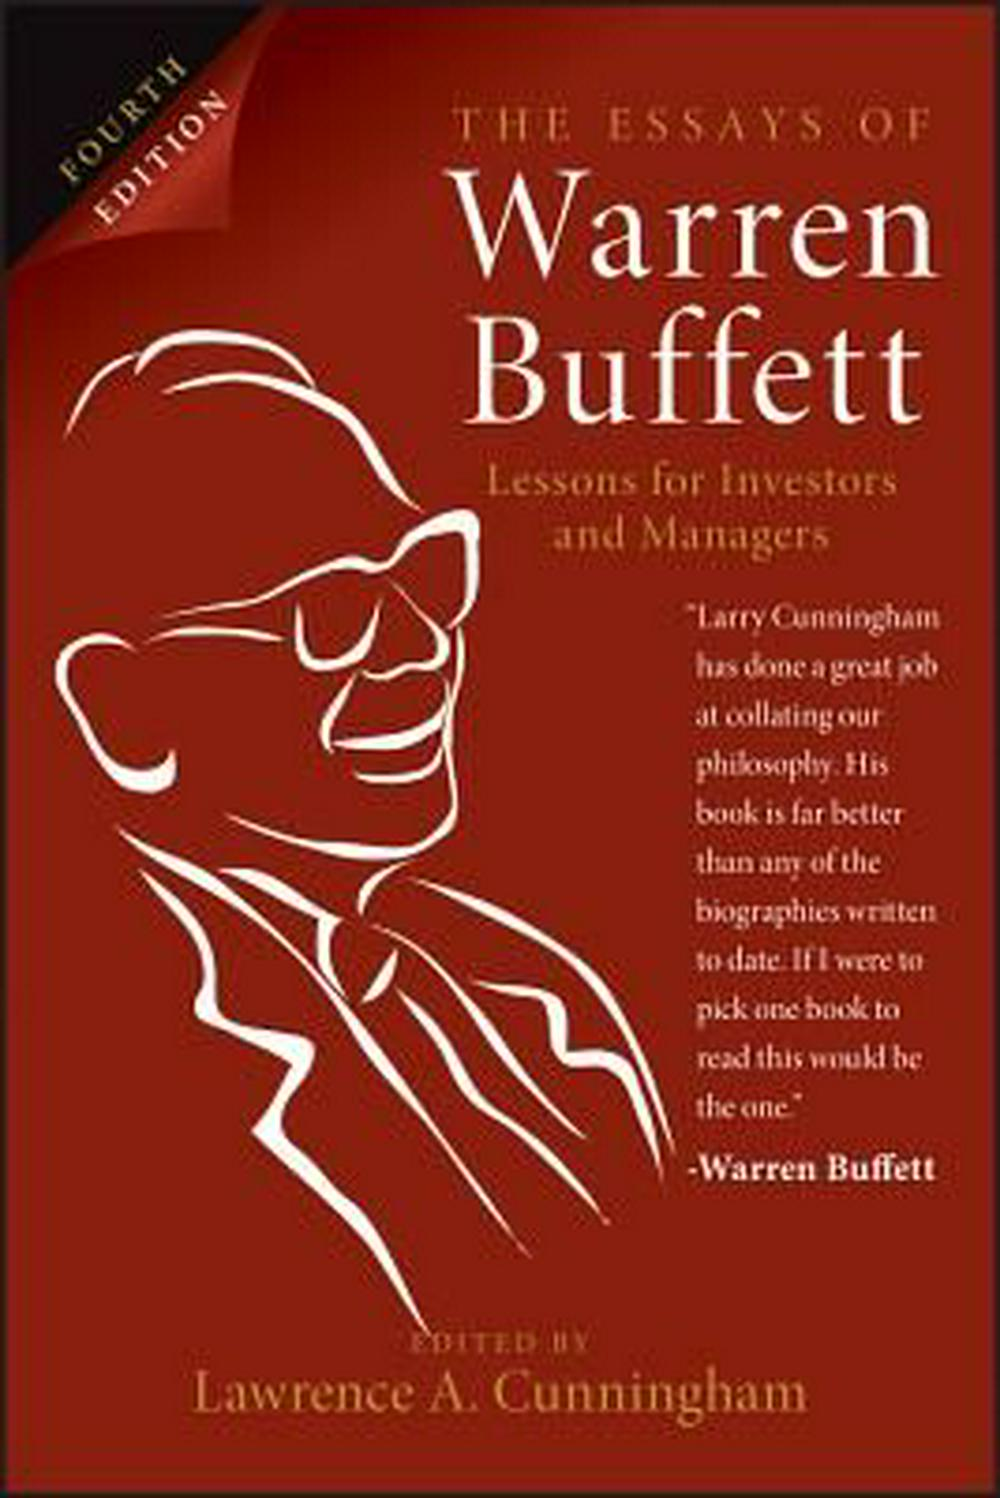 012 Essay Example The Essays Of Warren Buffett Stirring Pages Audiobook Download Summary Full